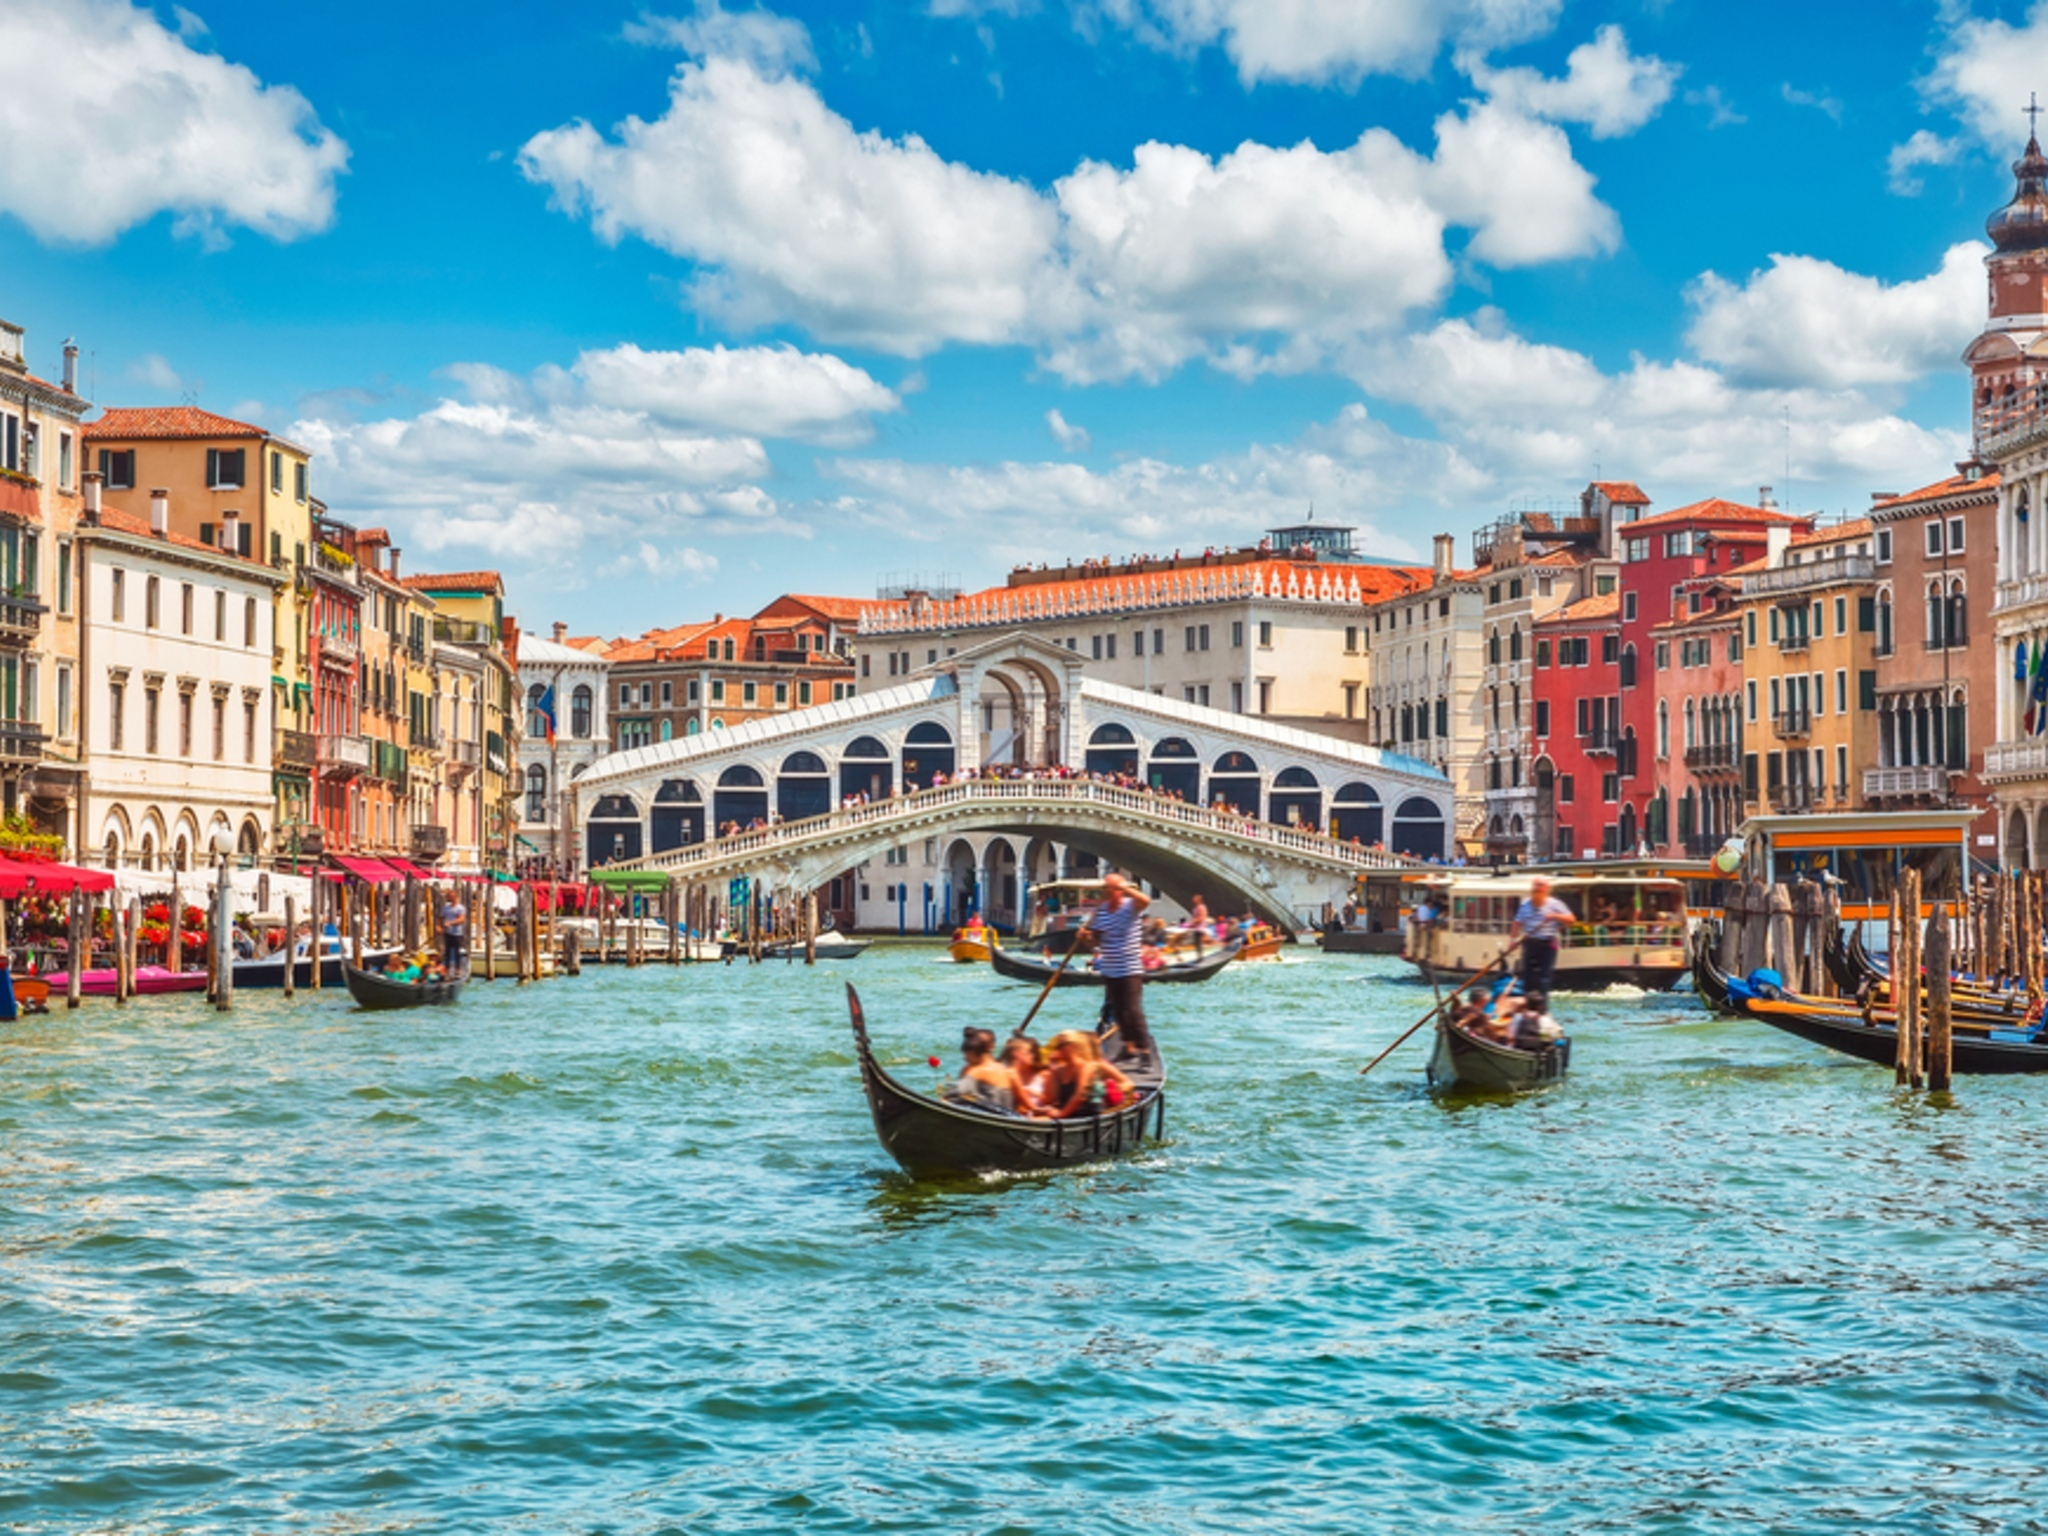 Venice is bringing in turnstiles and entry fees to control tourism